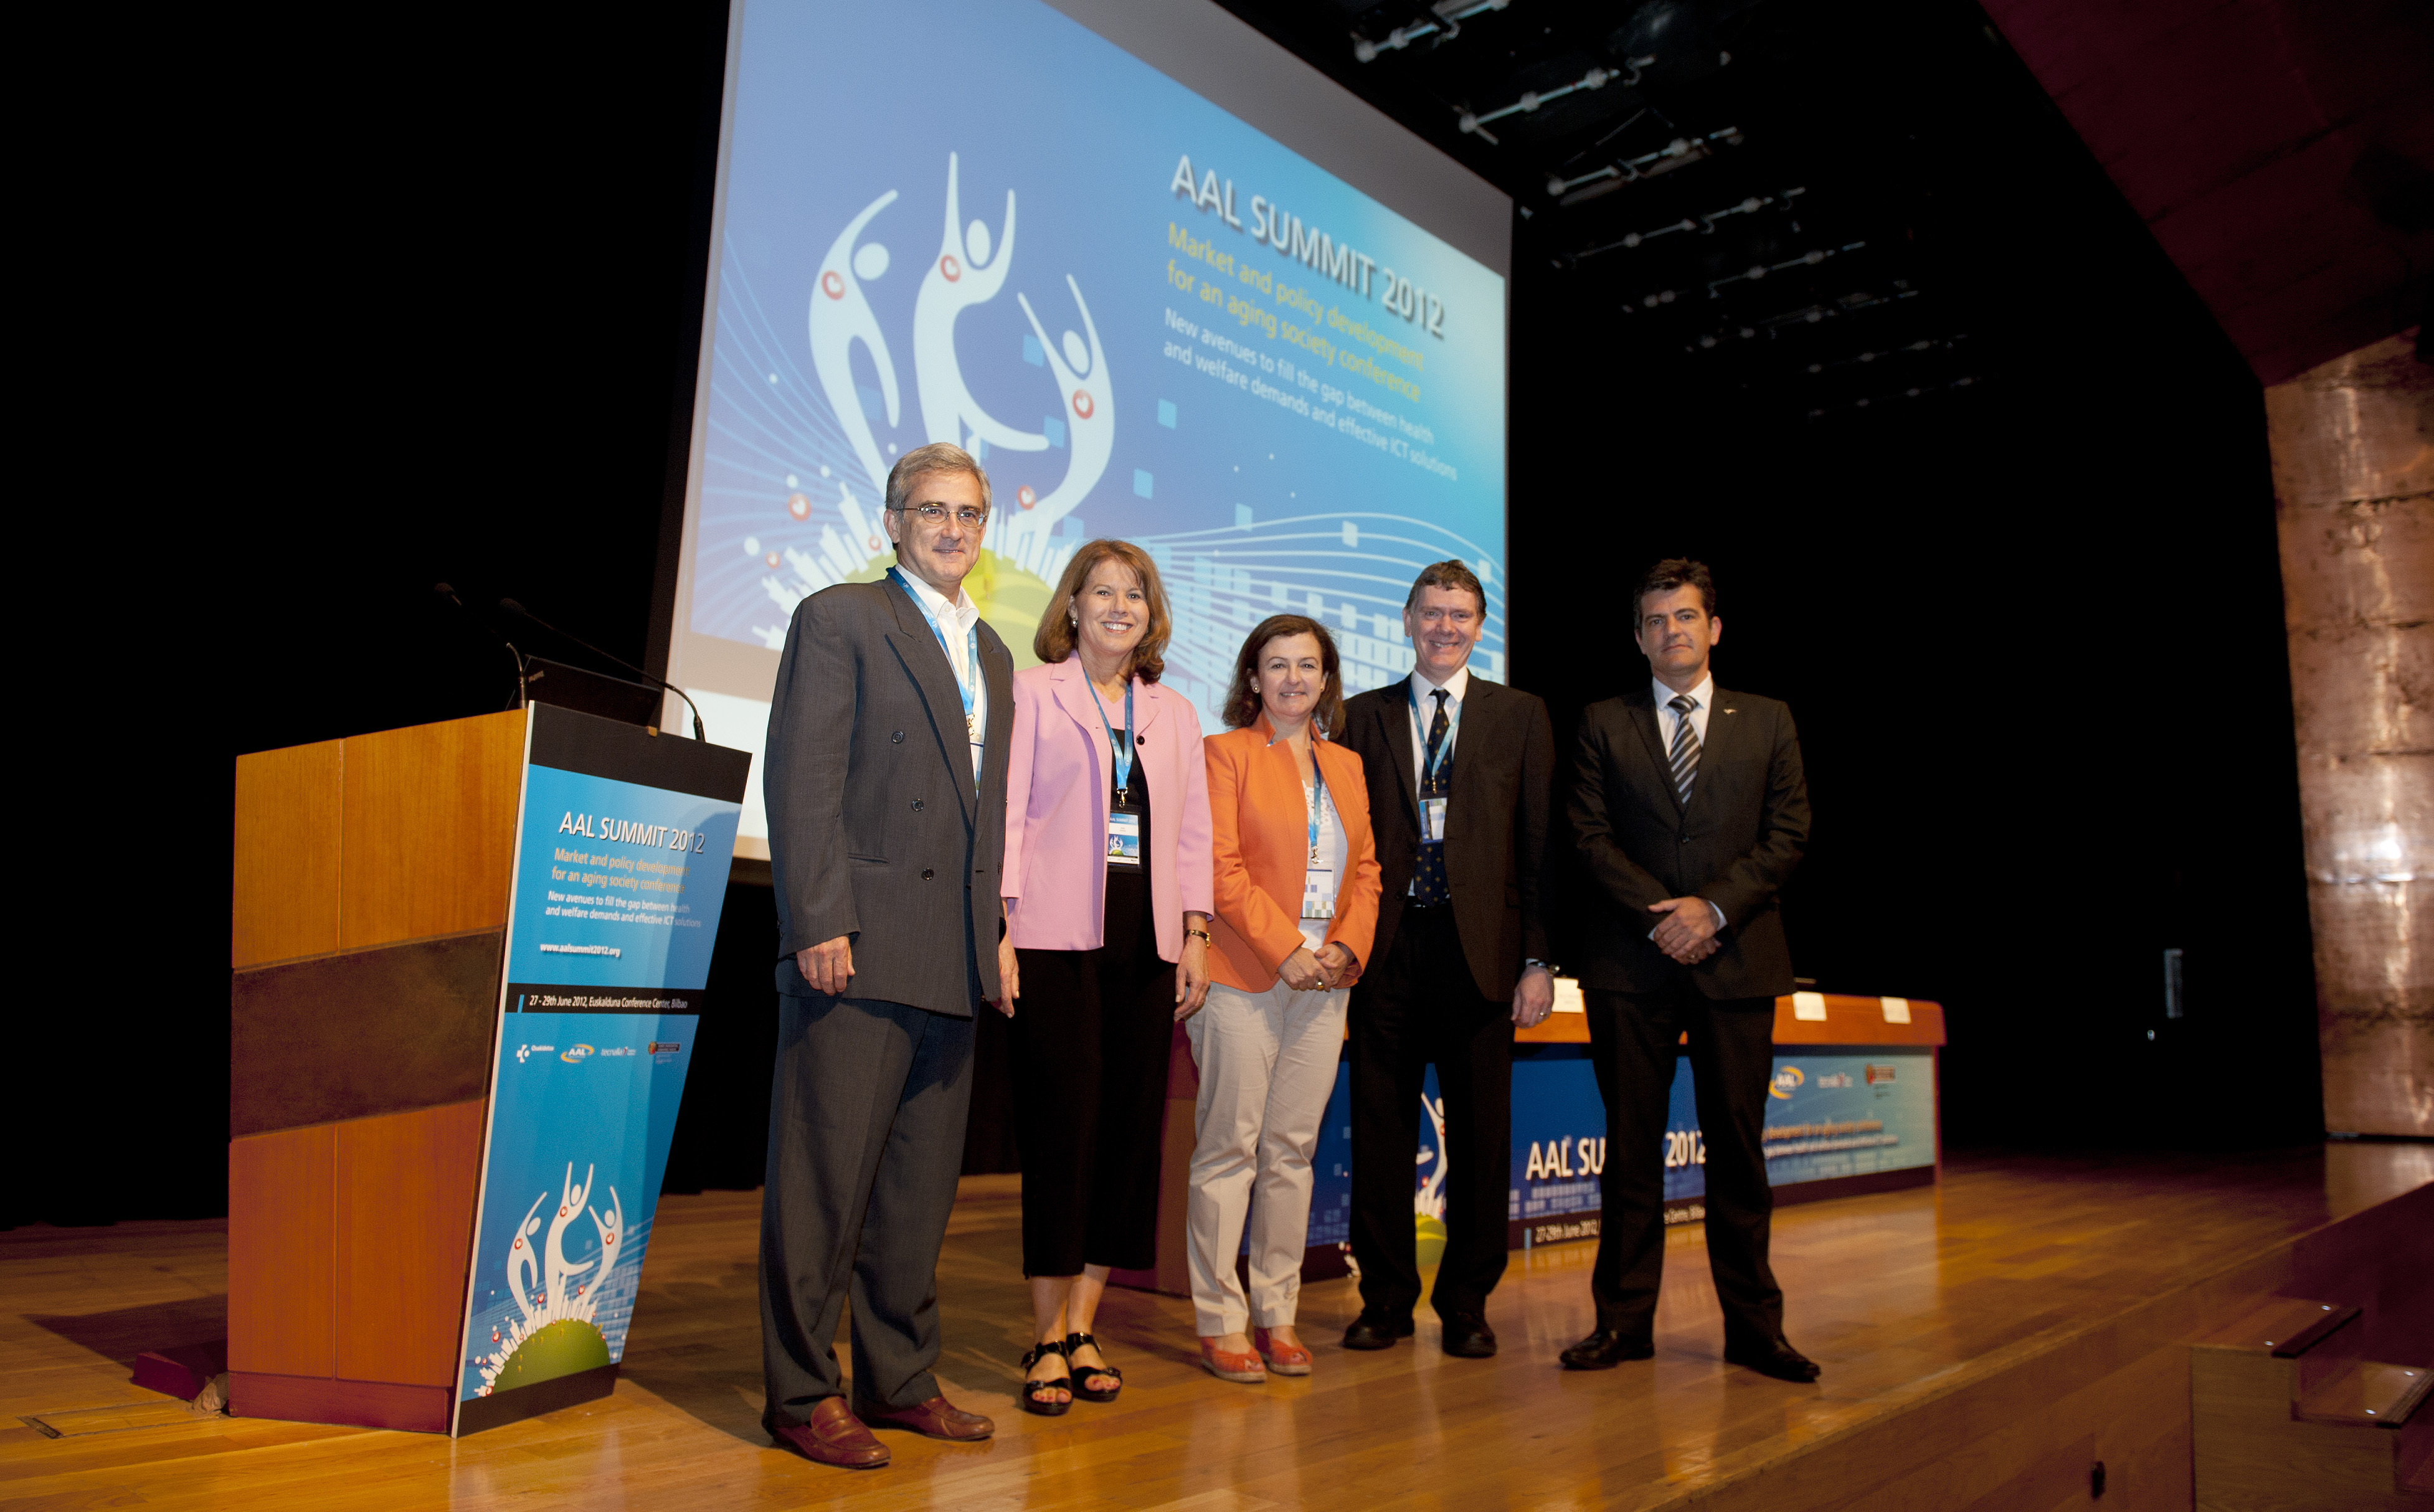 2012_06_29_congreso_aal_summit.jpg